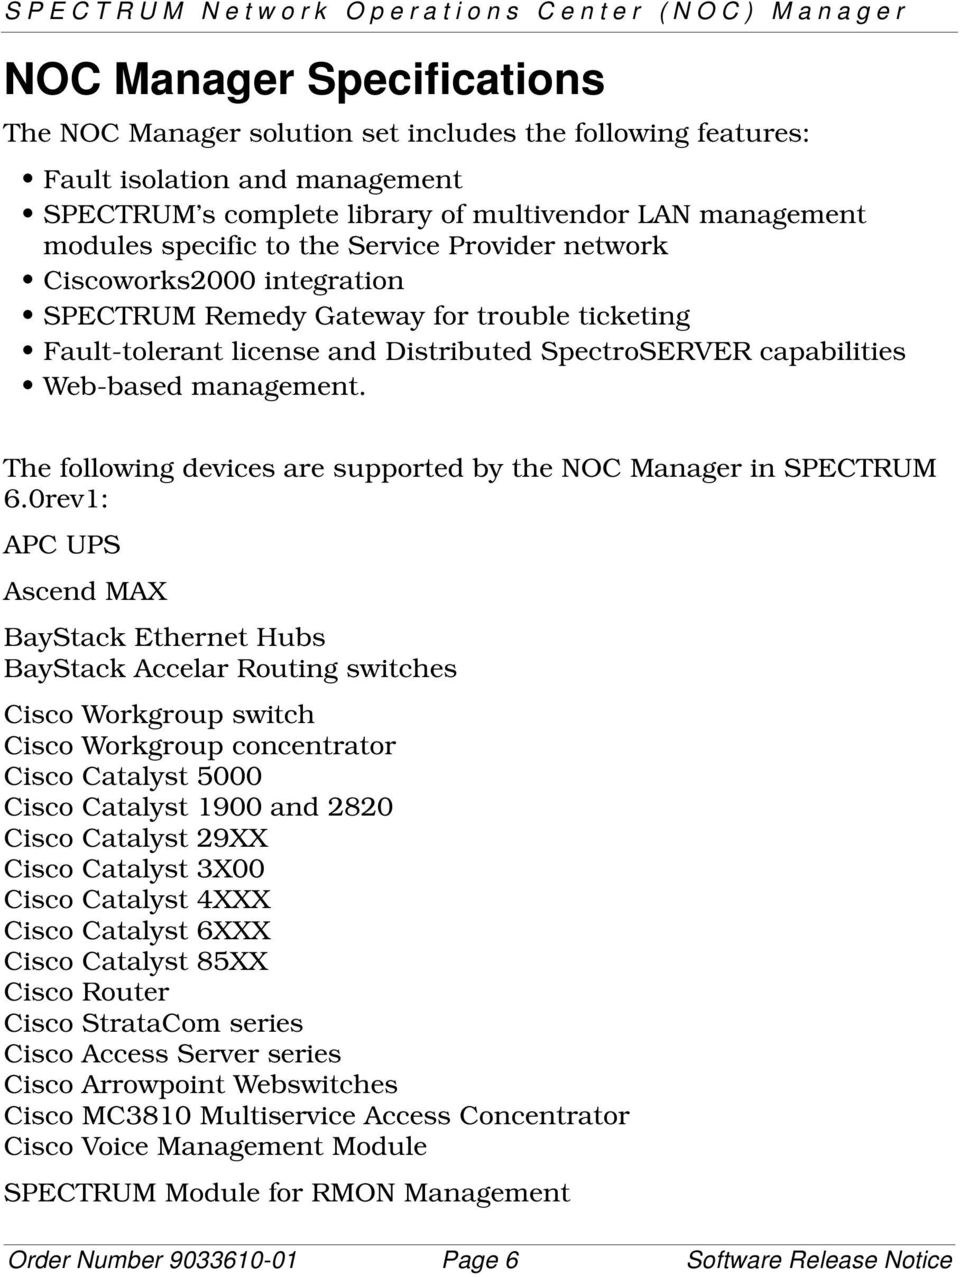 The following devices are supported by the NOC Manager in SPECTRUM 6.